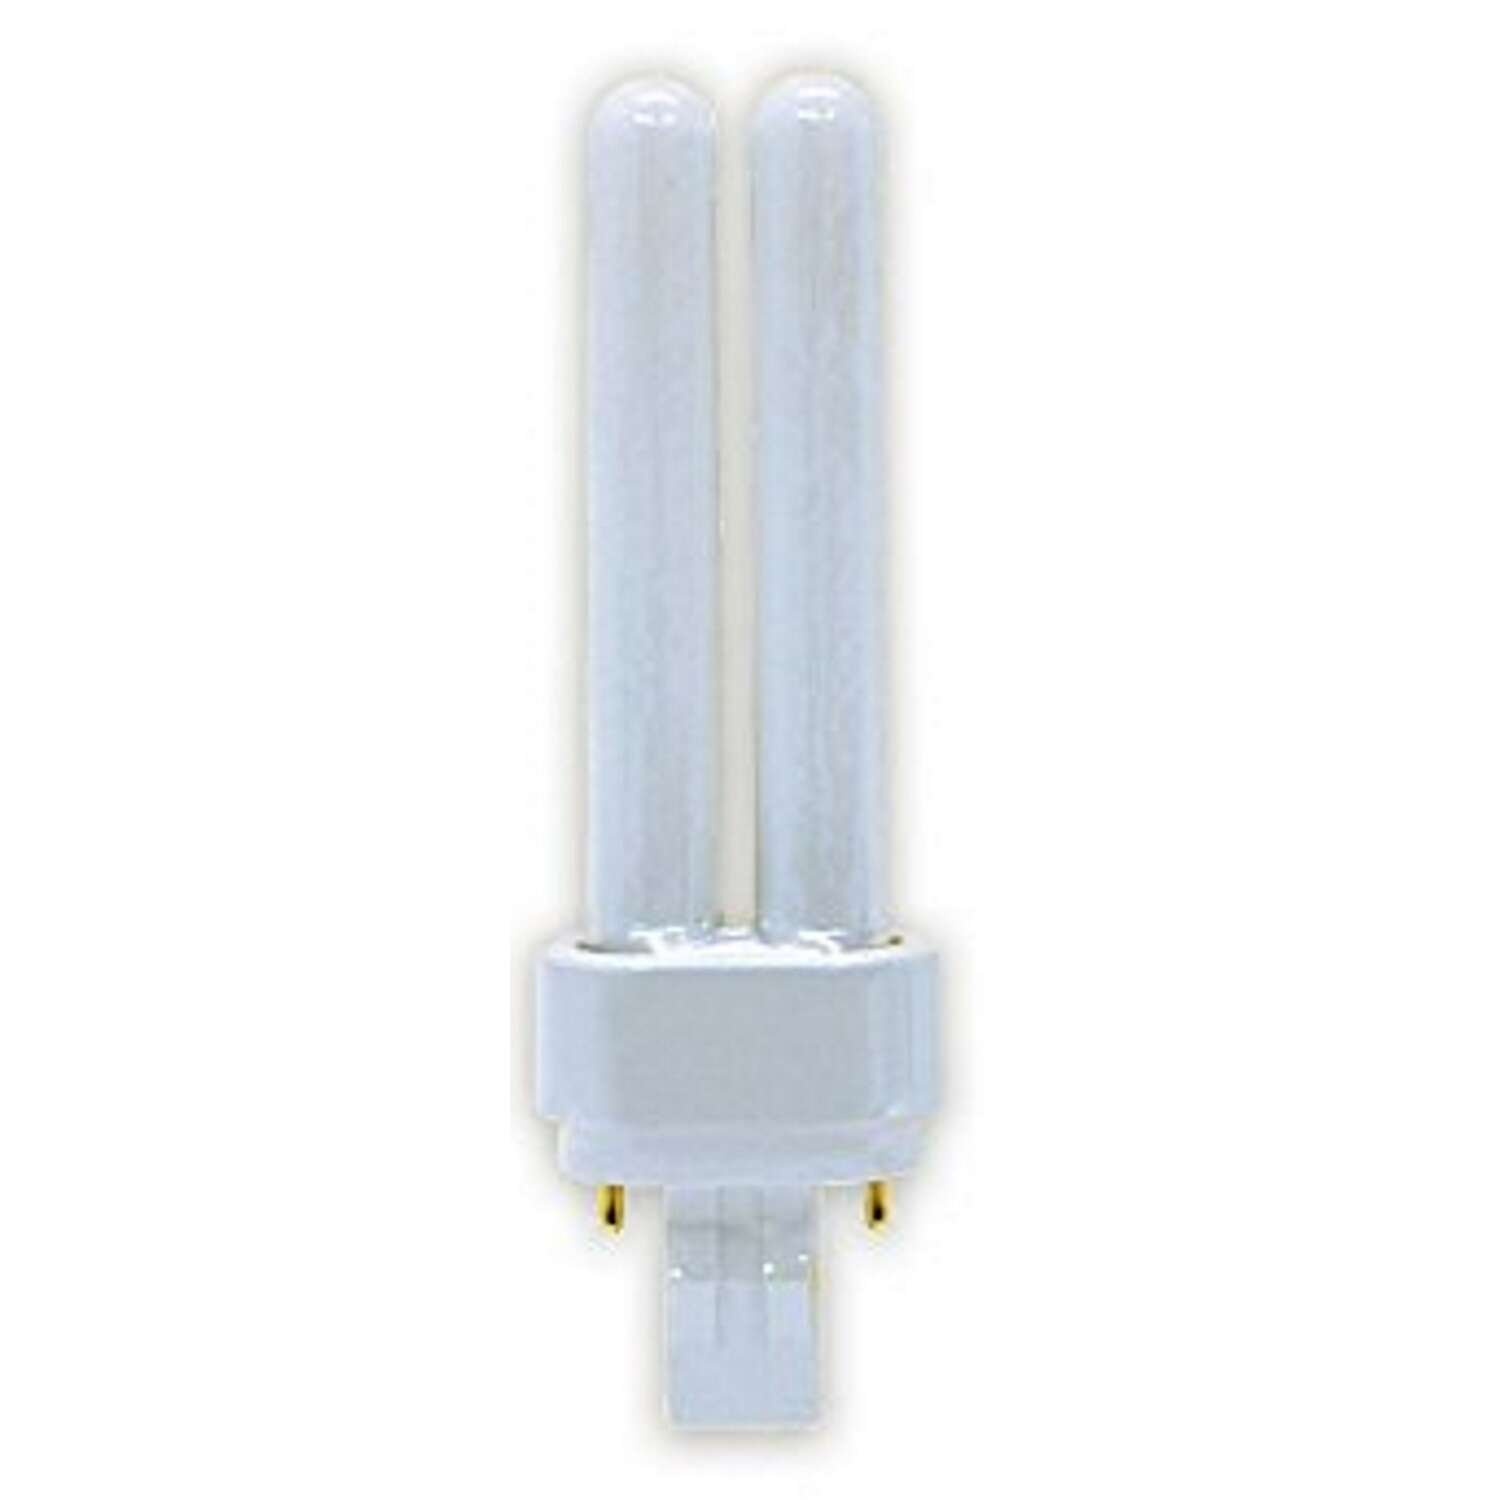 GE  Ecolux  13 watts T4  5 in. L CFL Bulb  Warm White  A-Line  2700 K 1 pk